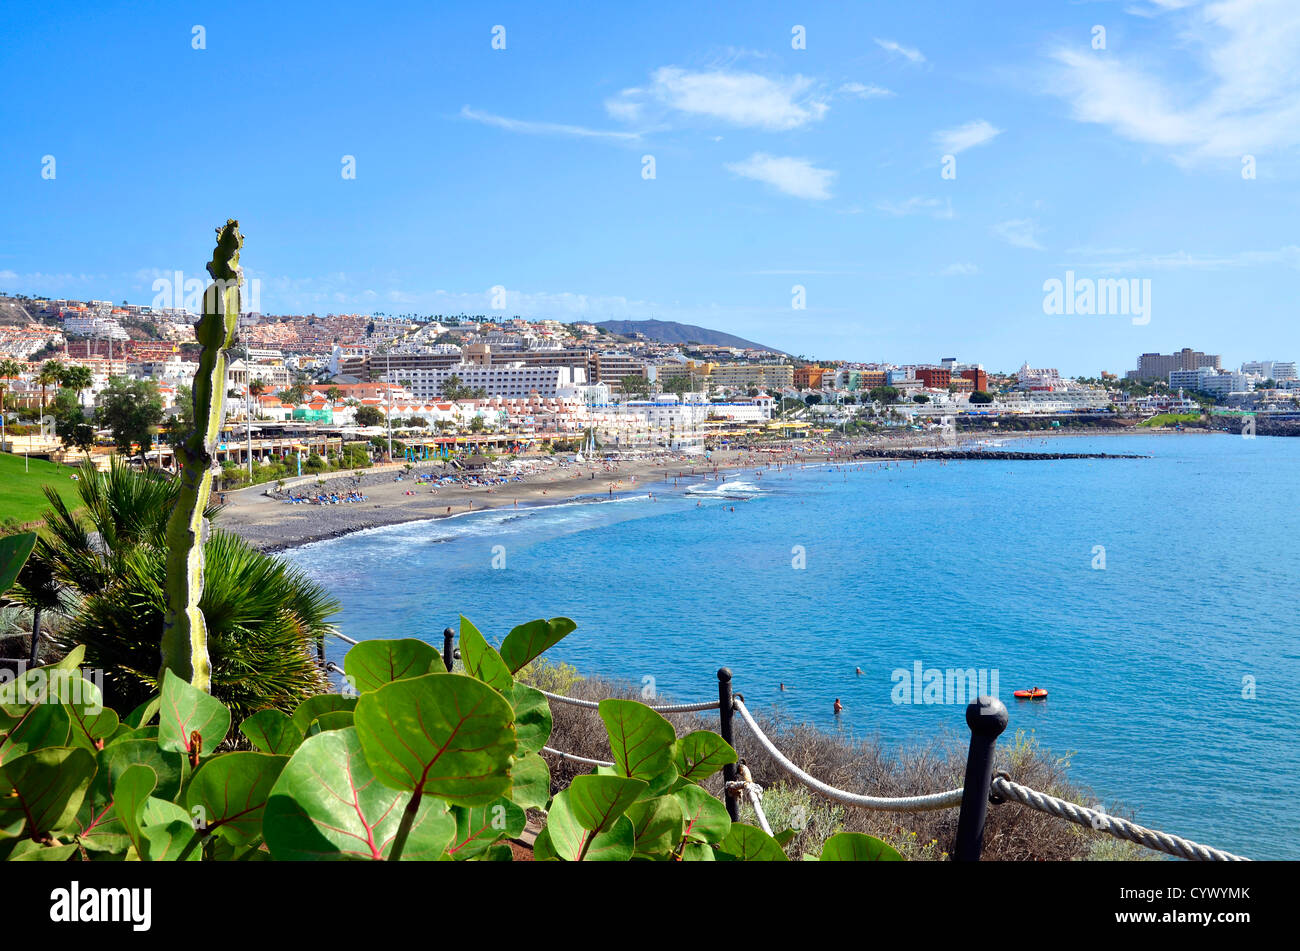 Looking towards Torviscas from Fanabe on the Costa Adeje, Tenerife, Canary Islands - Stock Image